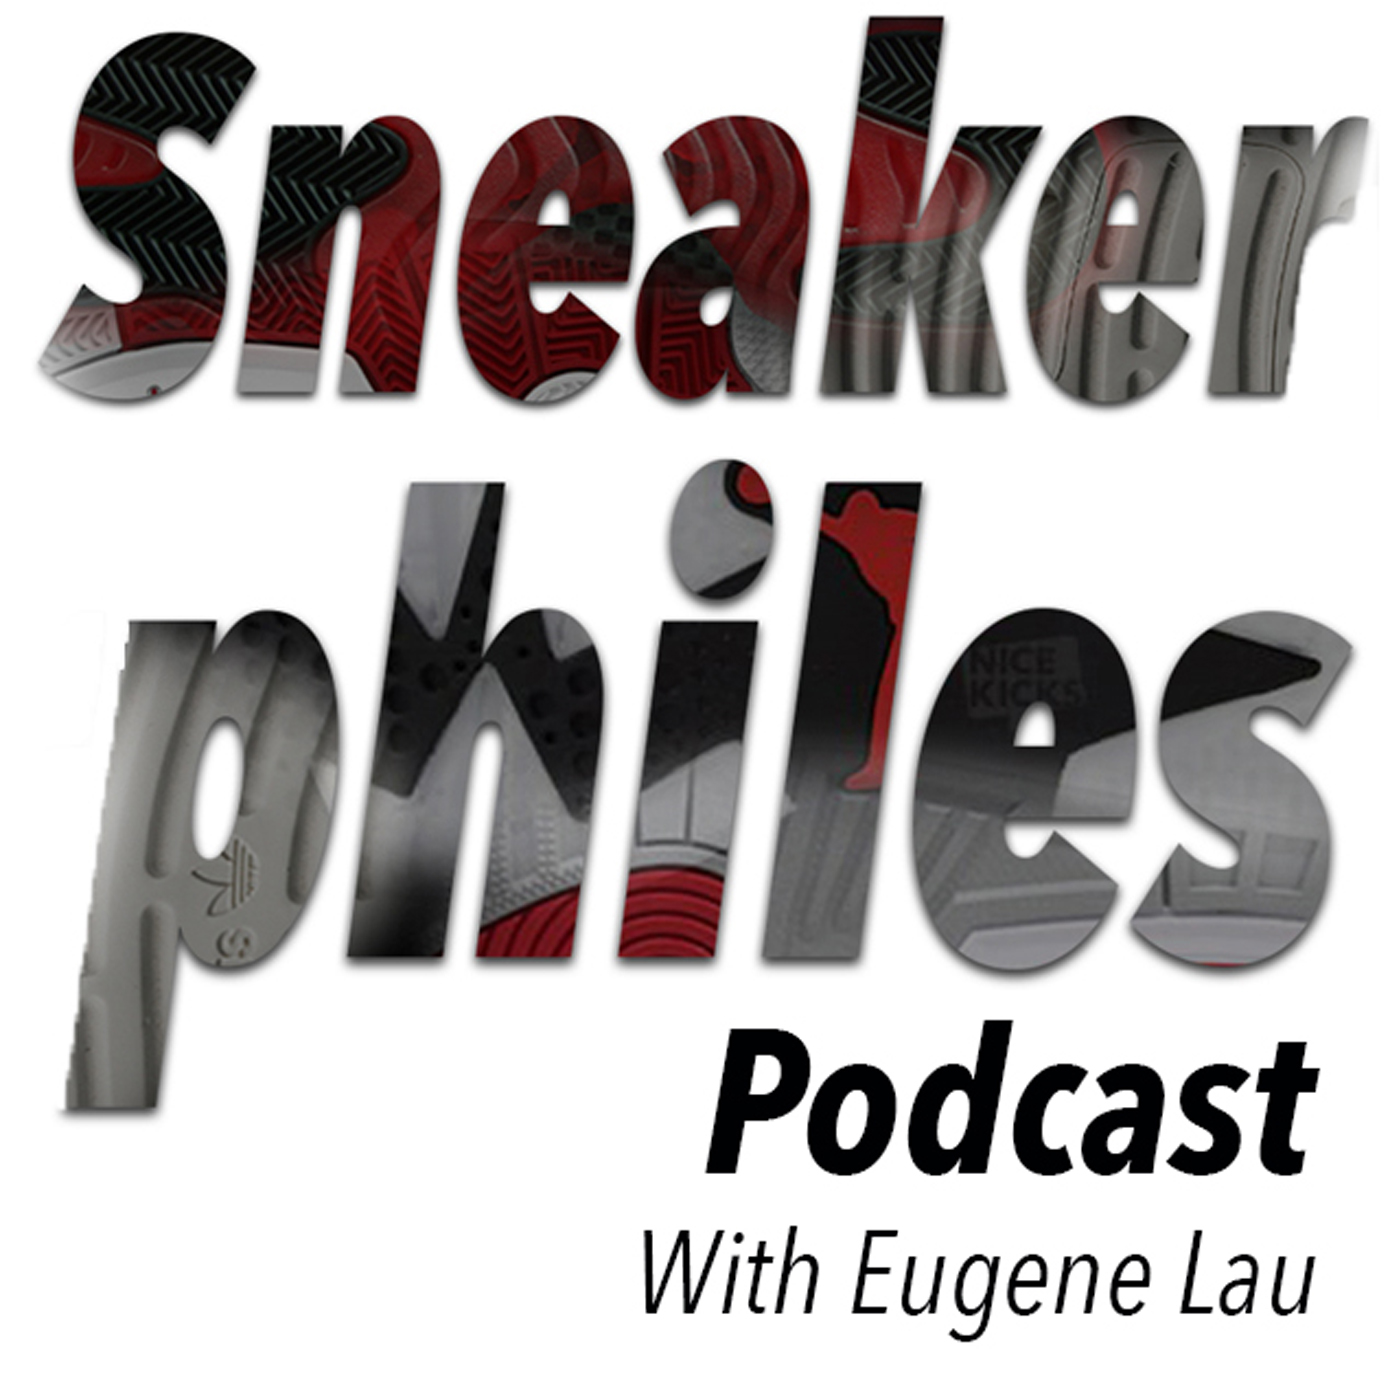 ca9f83197f7a Sneakerphiles Podcast - A Podcast About Sneakers by www ...